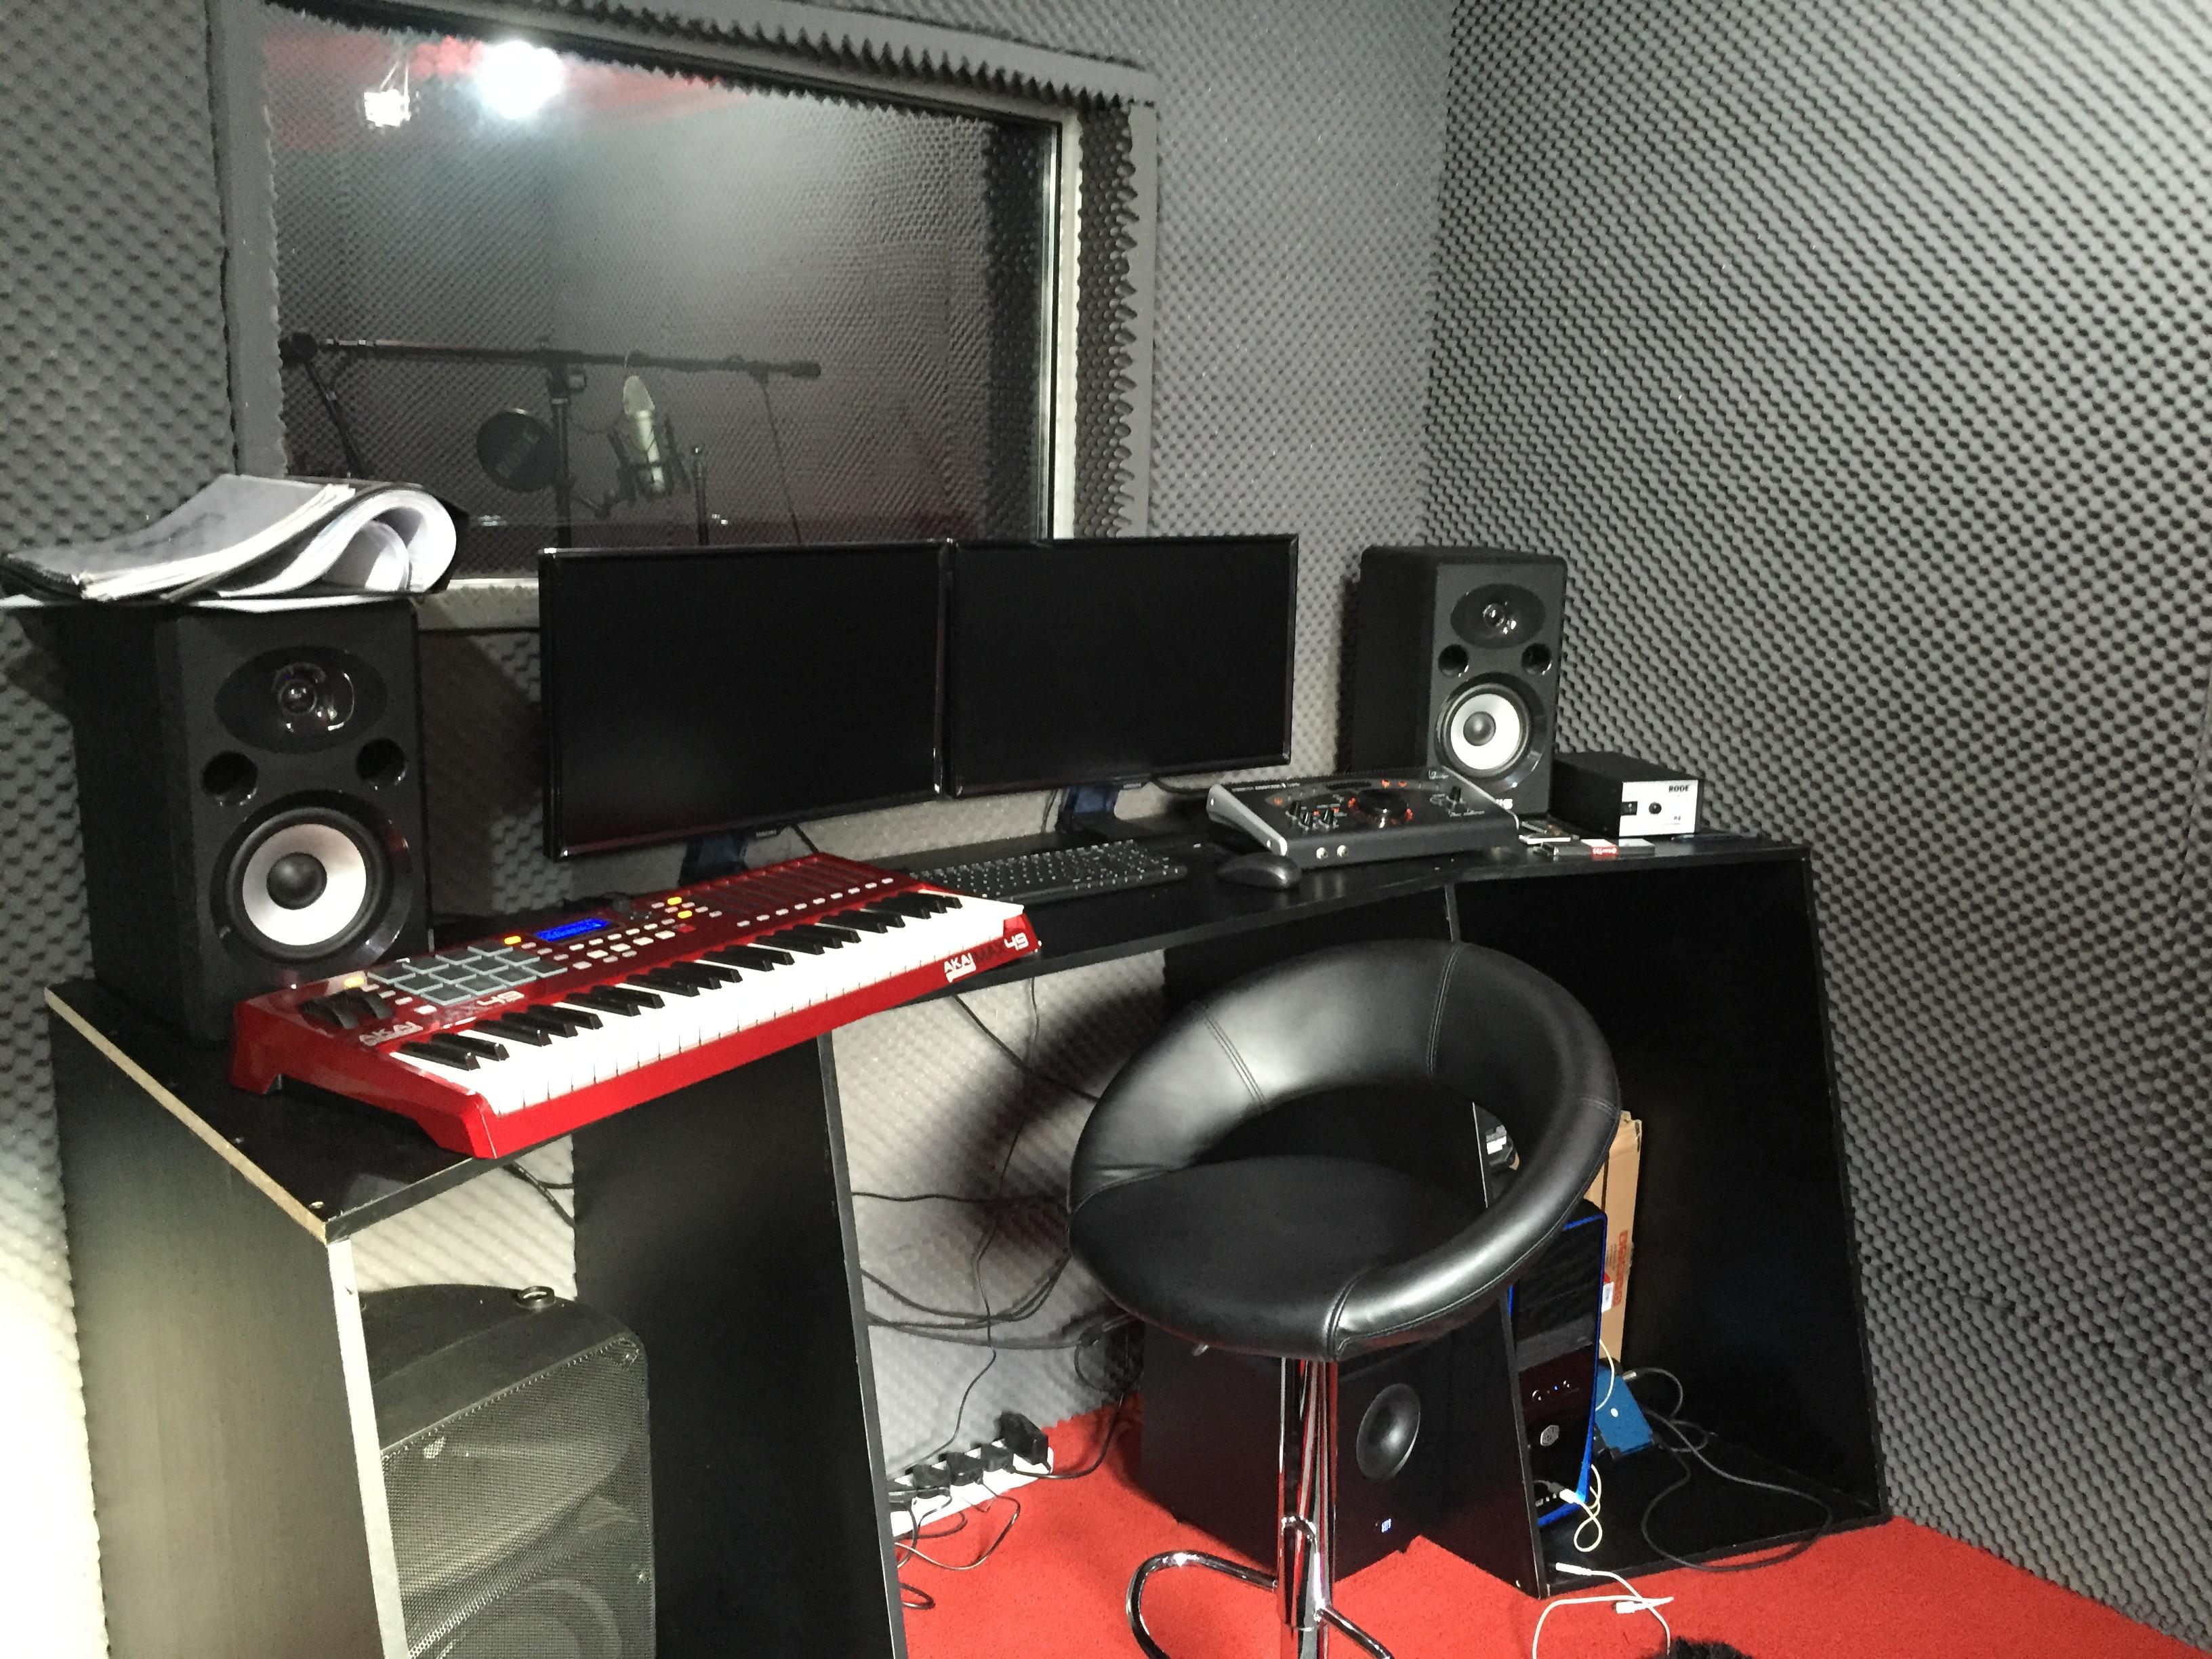 Our Music Production interns in Cape Town, South Africa, work in this fully equipped, modern recording studio.